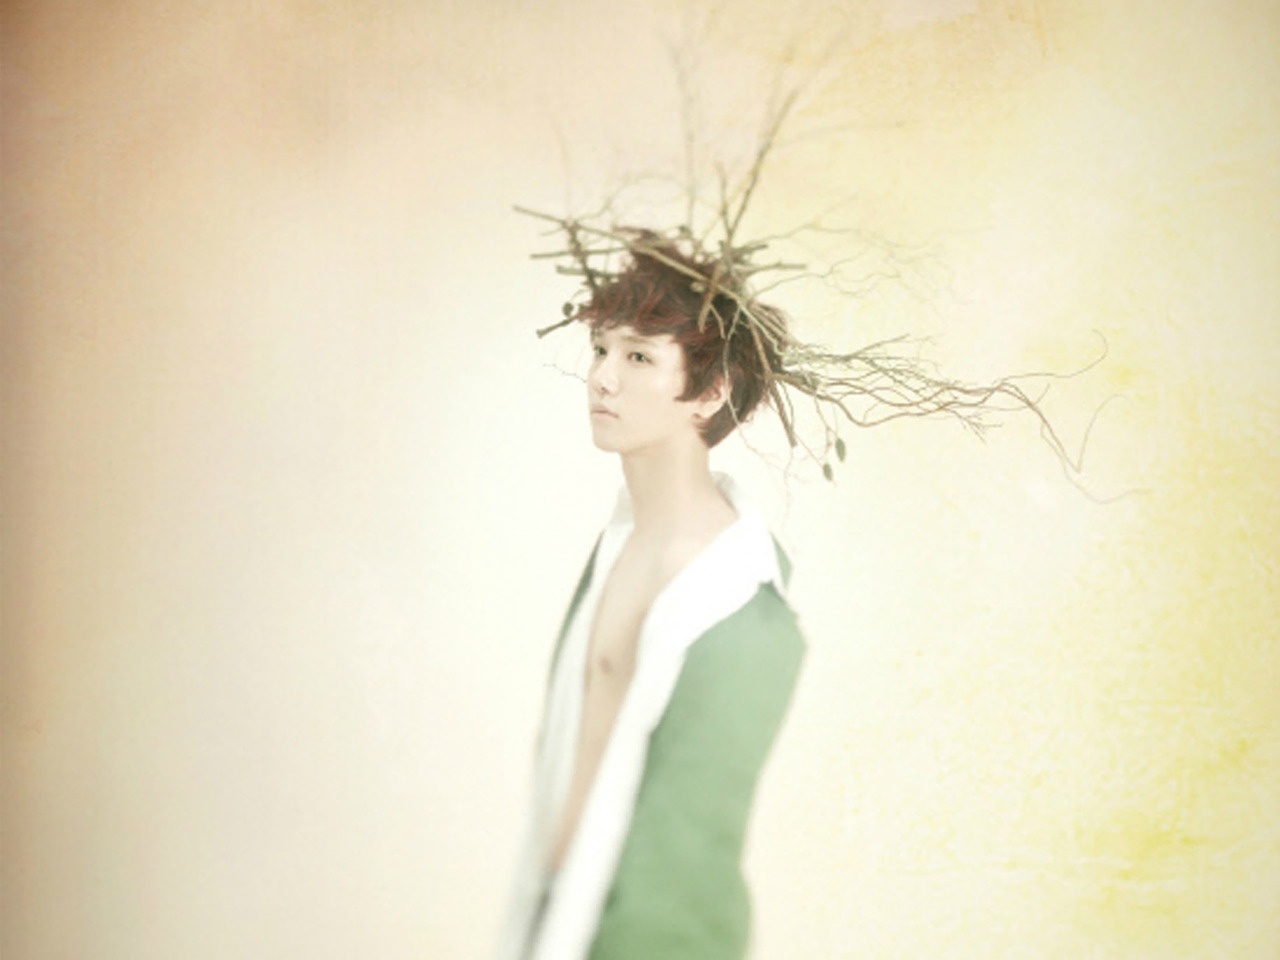 Mystery-SuperJunior-Yesung-Korean-Kpop-collections-Download-Super-Junior-Yesung-wallpaper-wp4602865